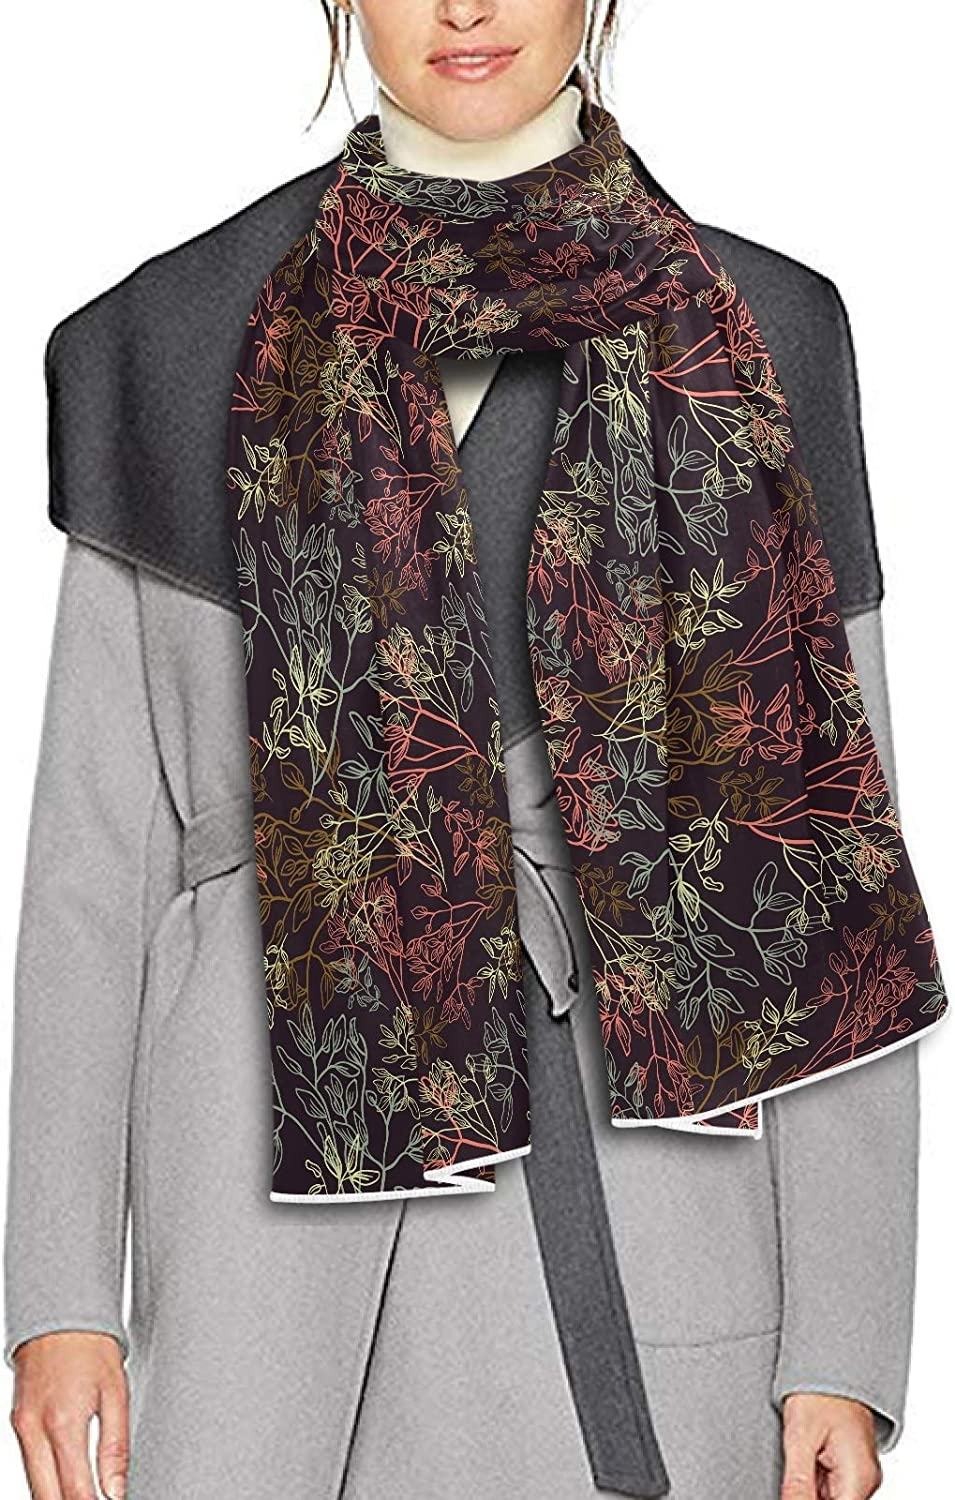 Scarf for Women and Men Flower Blossom Rose Peonies Blanket Shawl Scarf wraps Soft thick Winter Oversized Scarves Lightweight